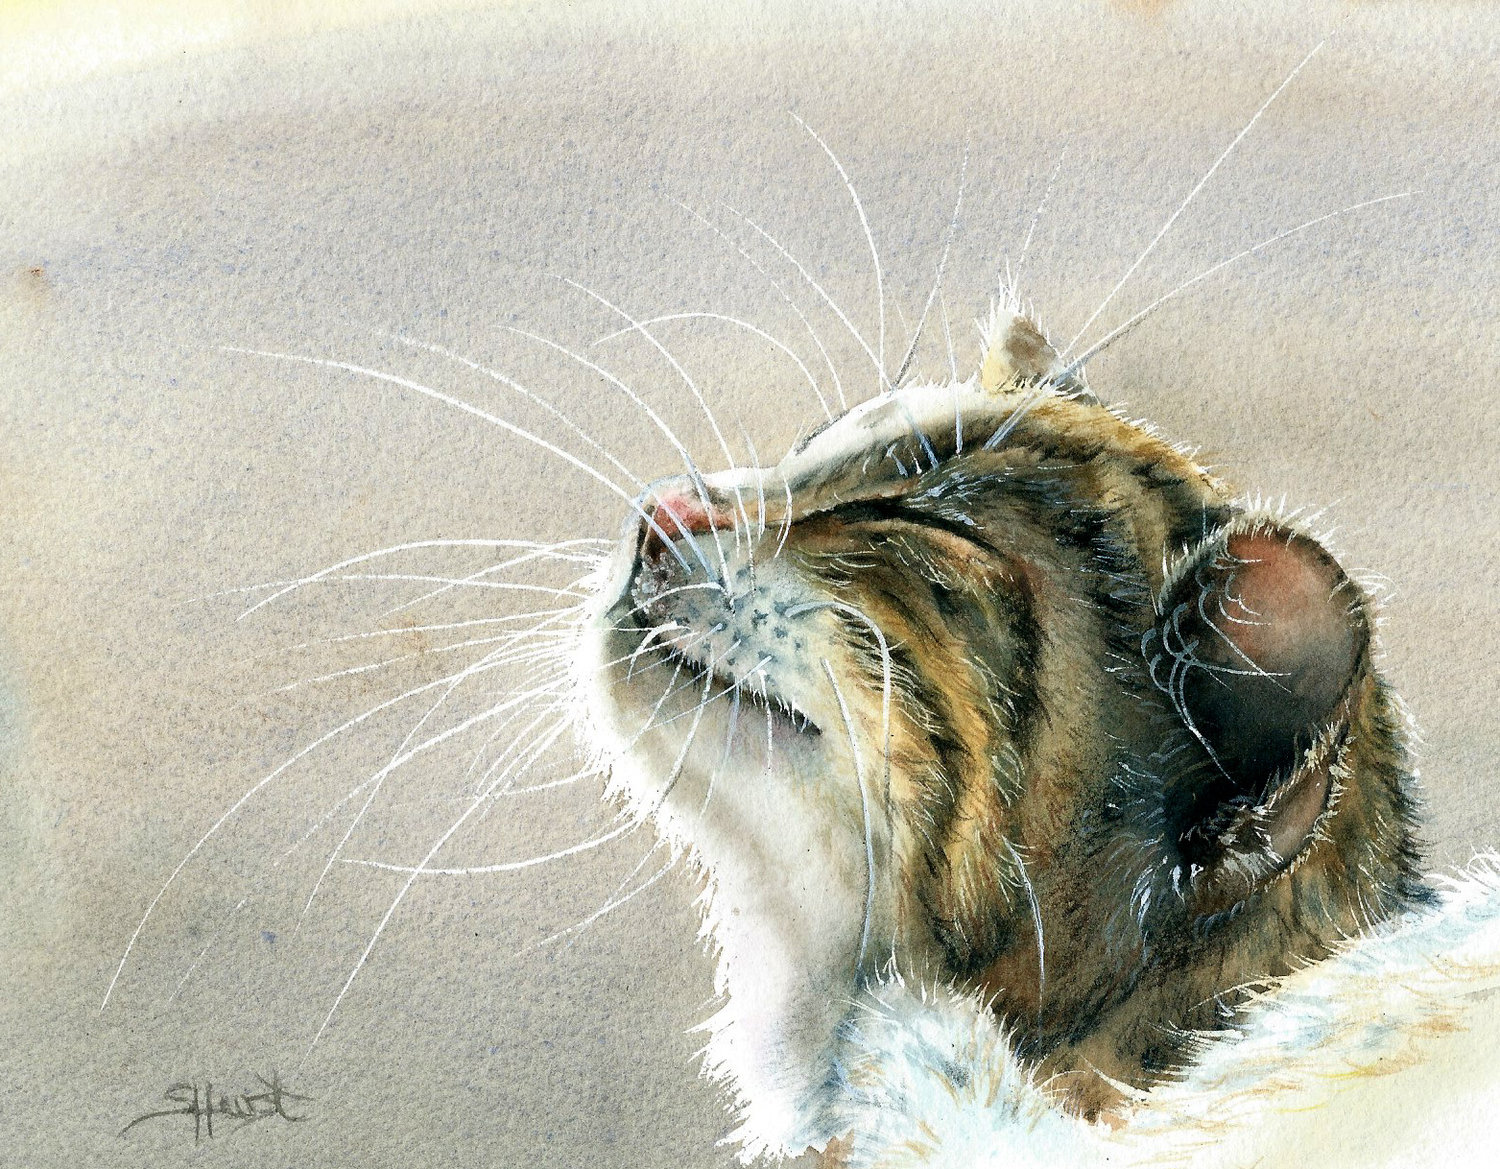 'Purring In The Sunshine', Sharon Hurst, Watercolour and pencil, 15.63 x 12.18 cm